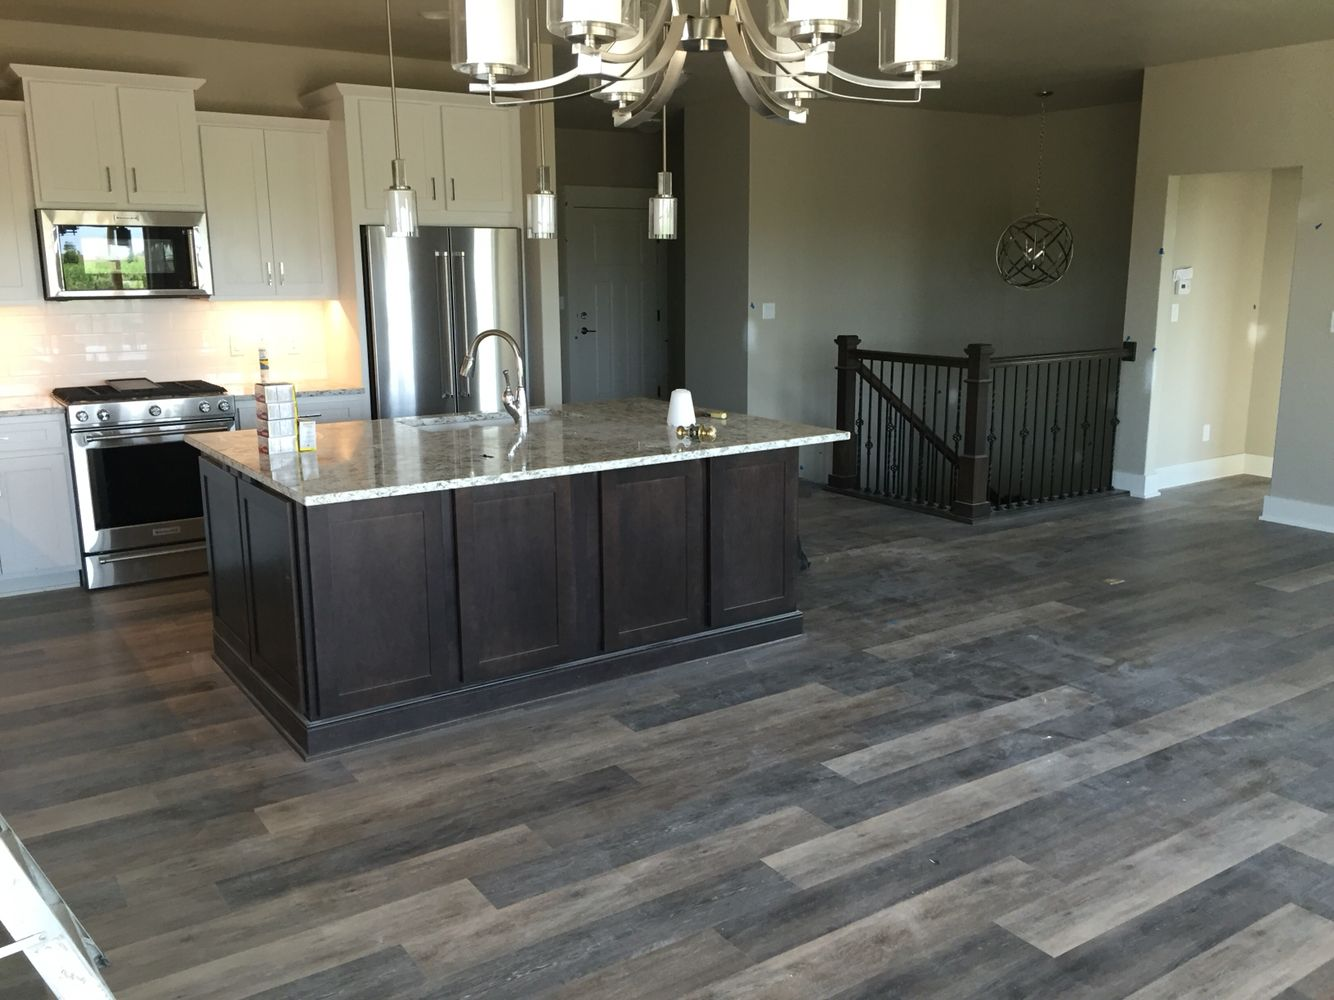 Remodeling for a Fireplace Laminate flooring in kitchen